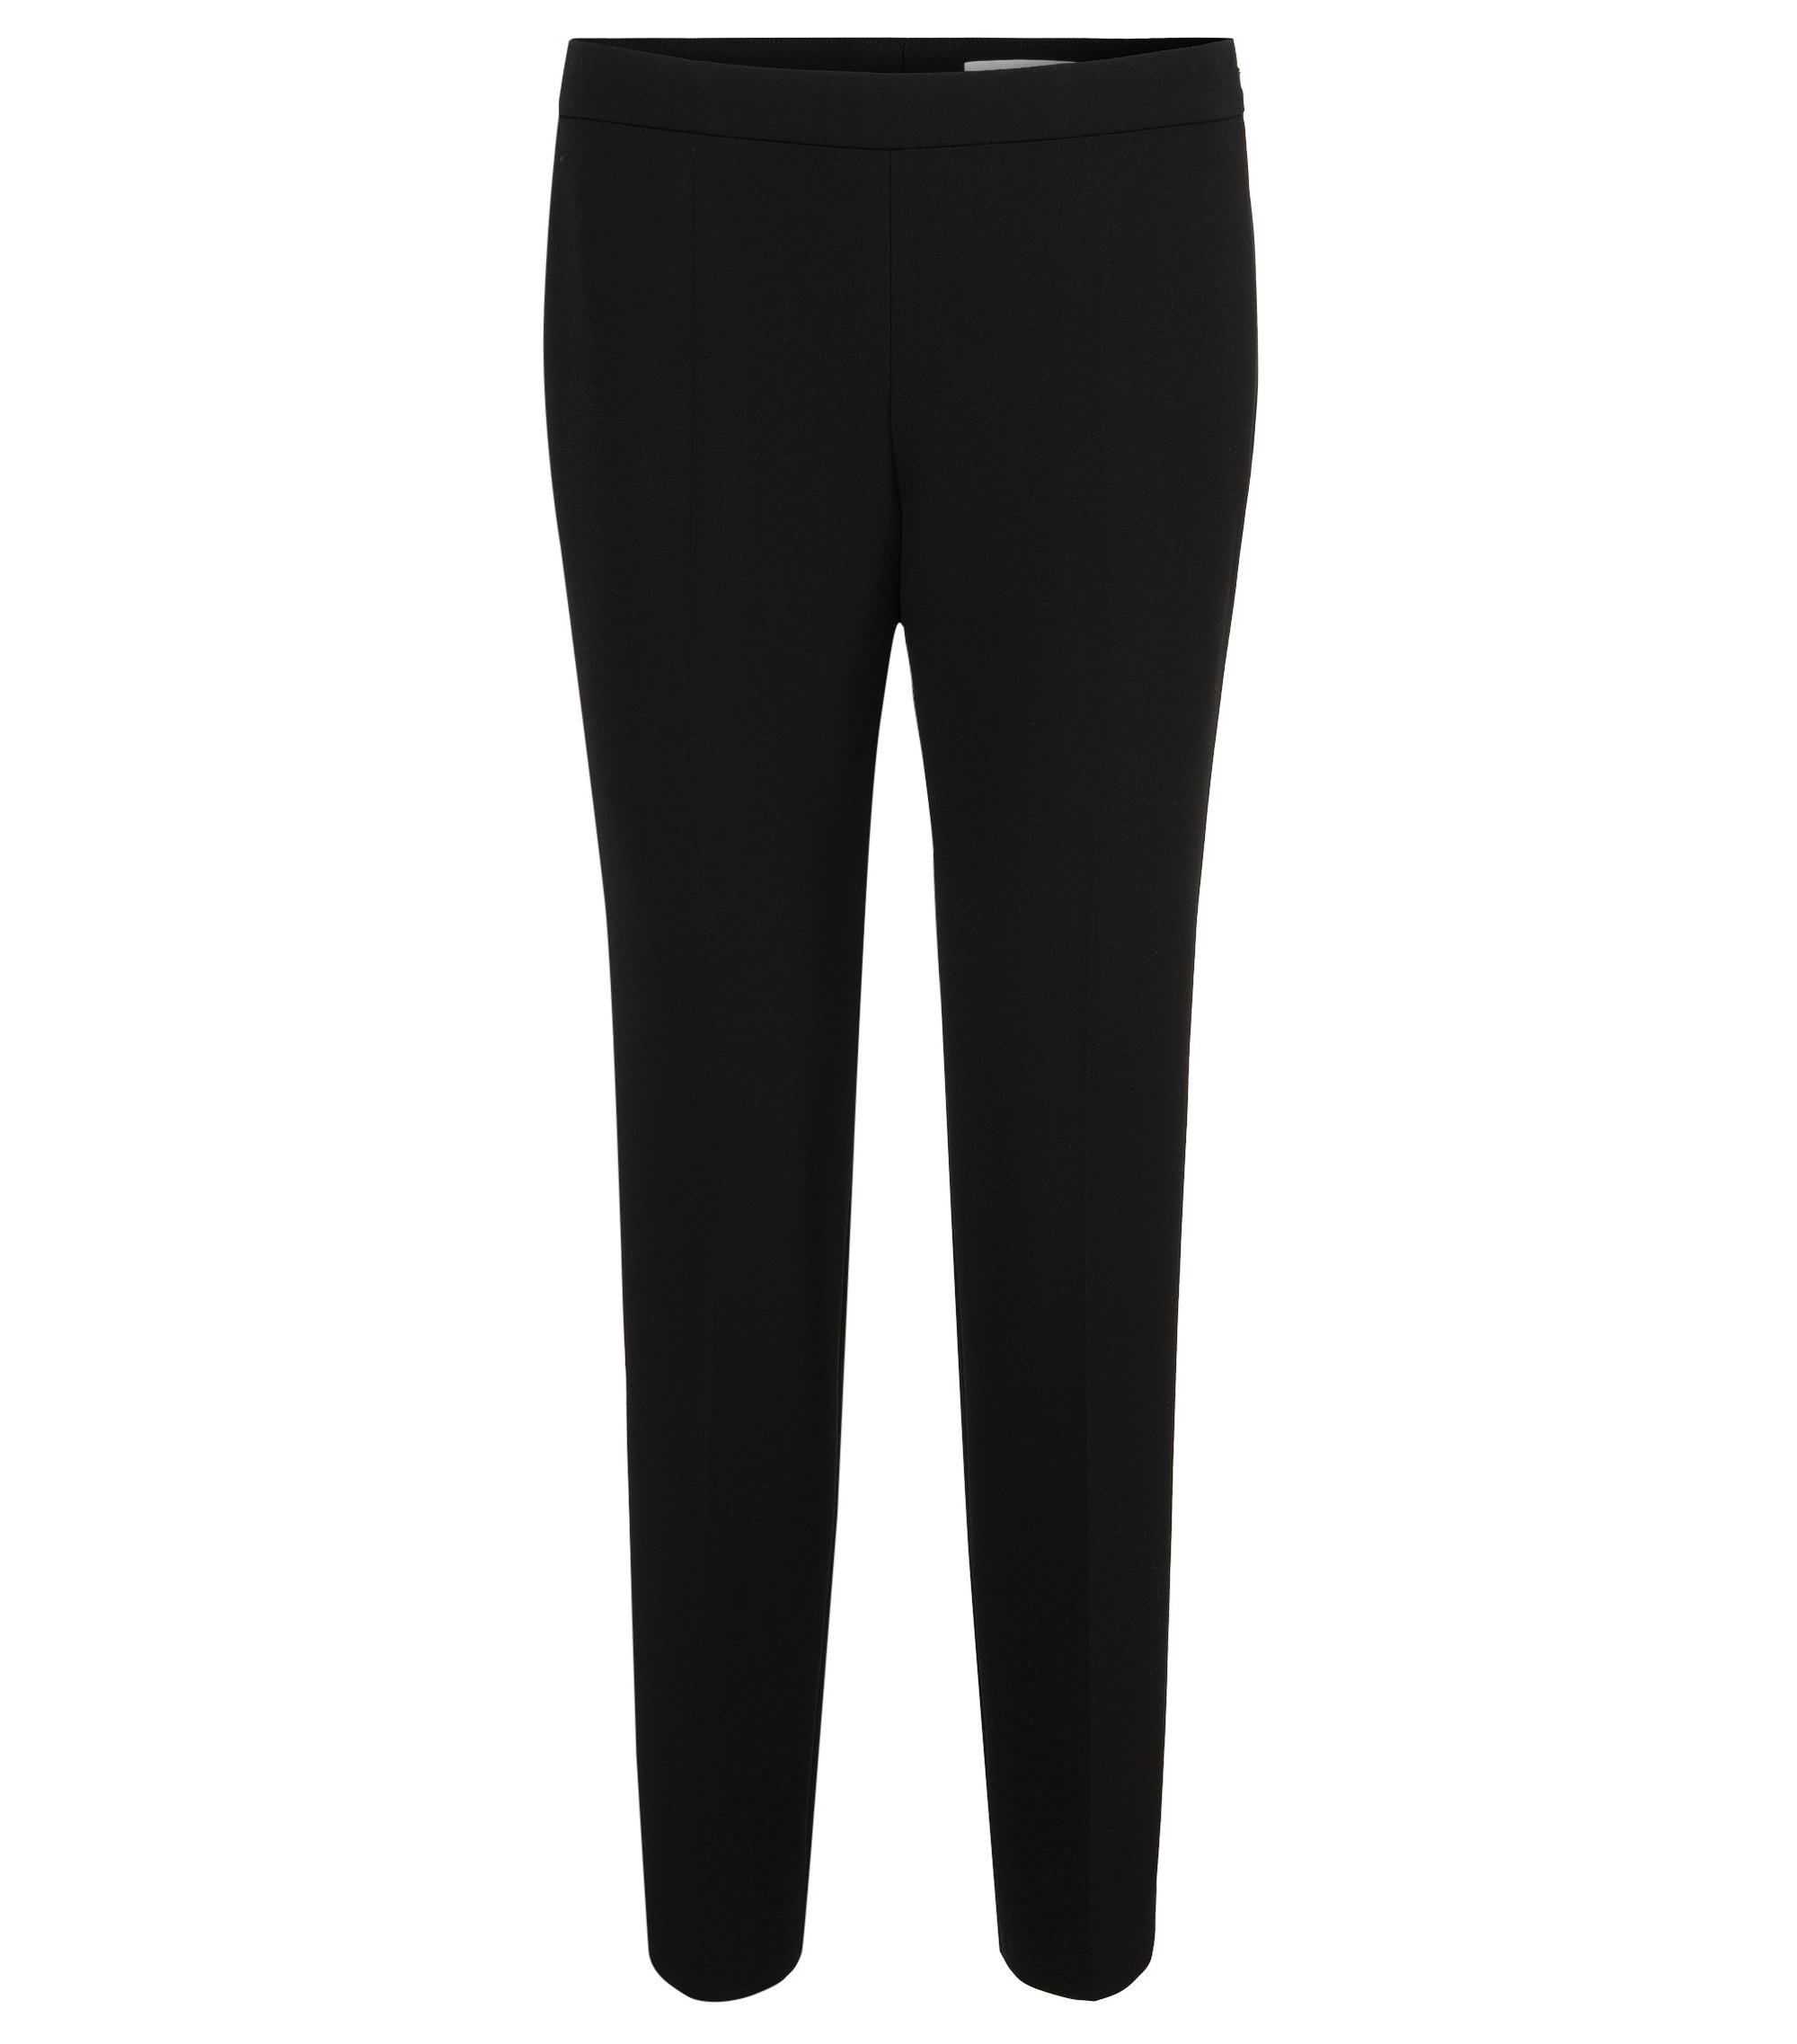 Pantalon Regular Fit en tissu stretch, Noir